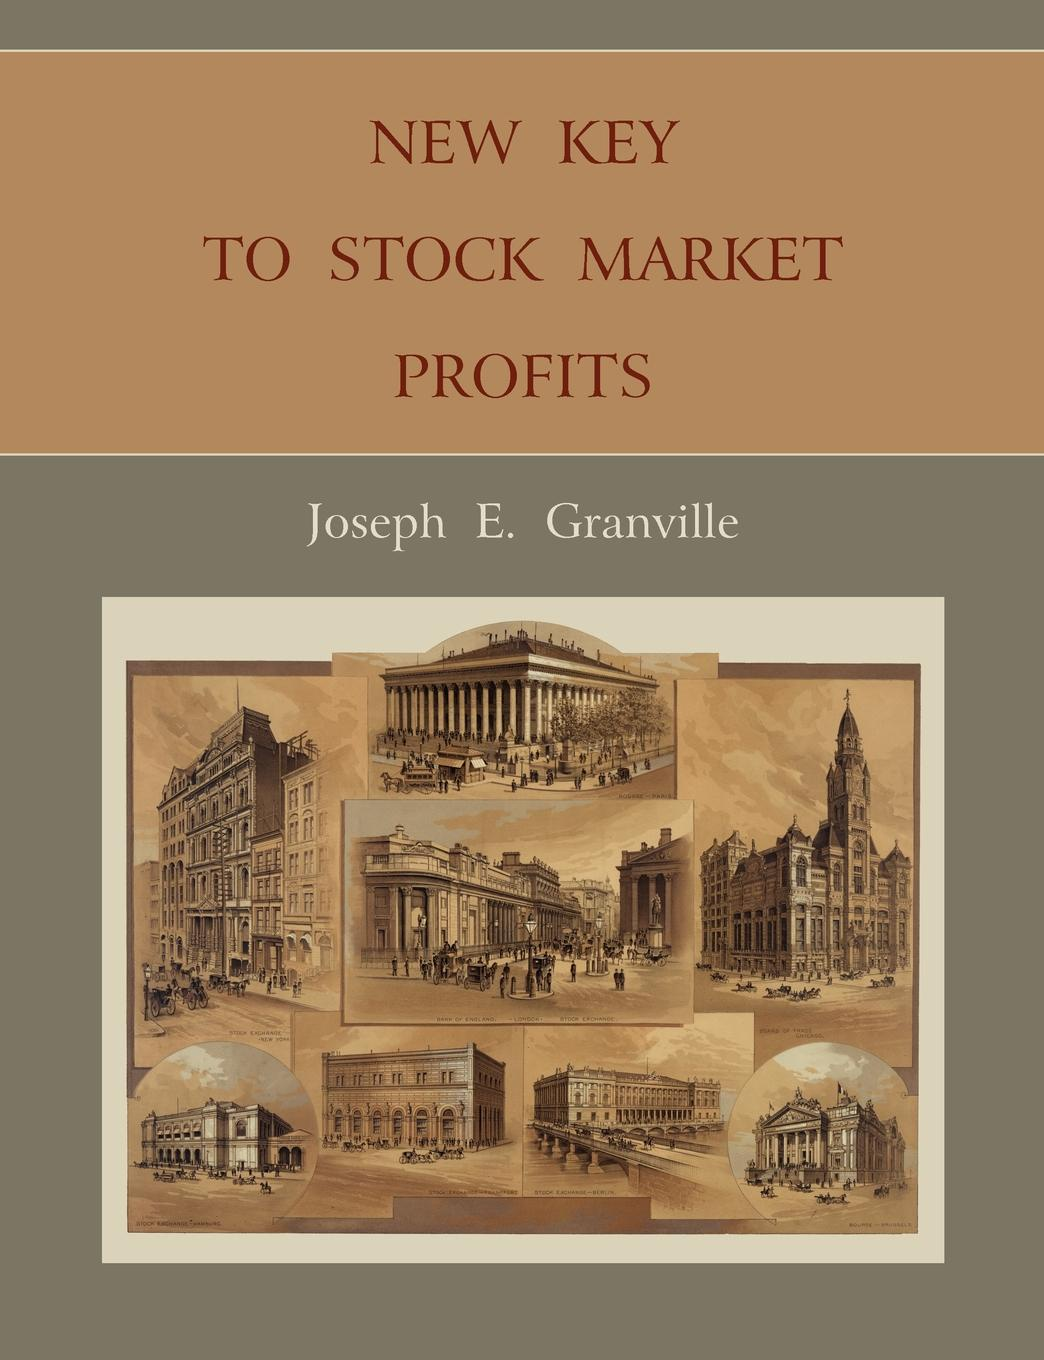 Joseph E. Granville New Key to Stock Market Profits